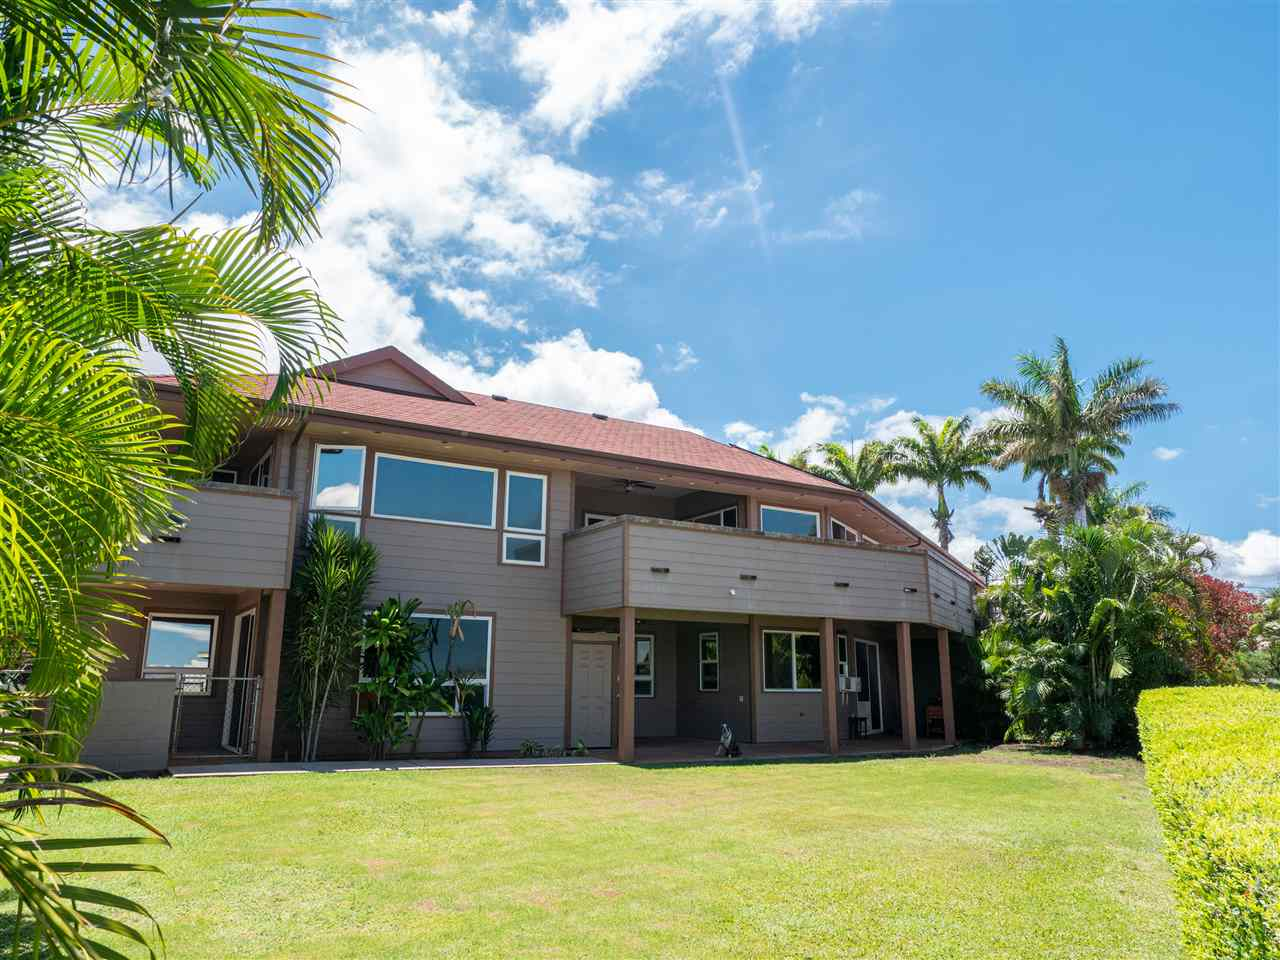 497 Mililani Pl in Maui Meadows